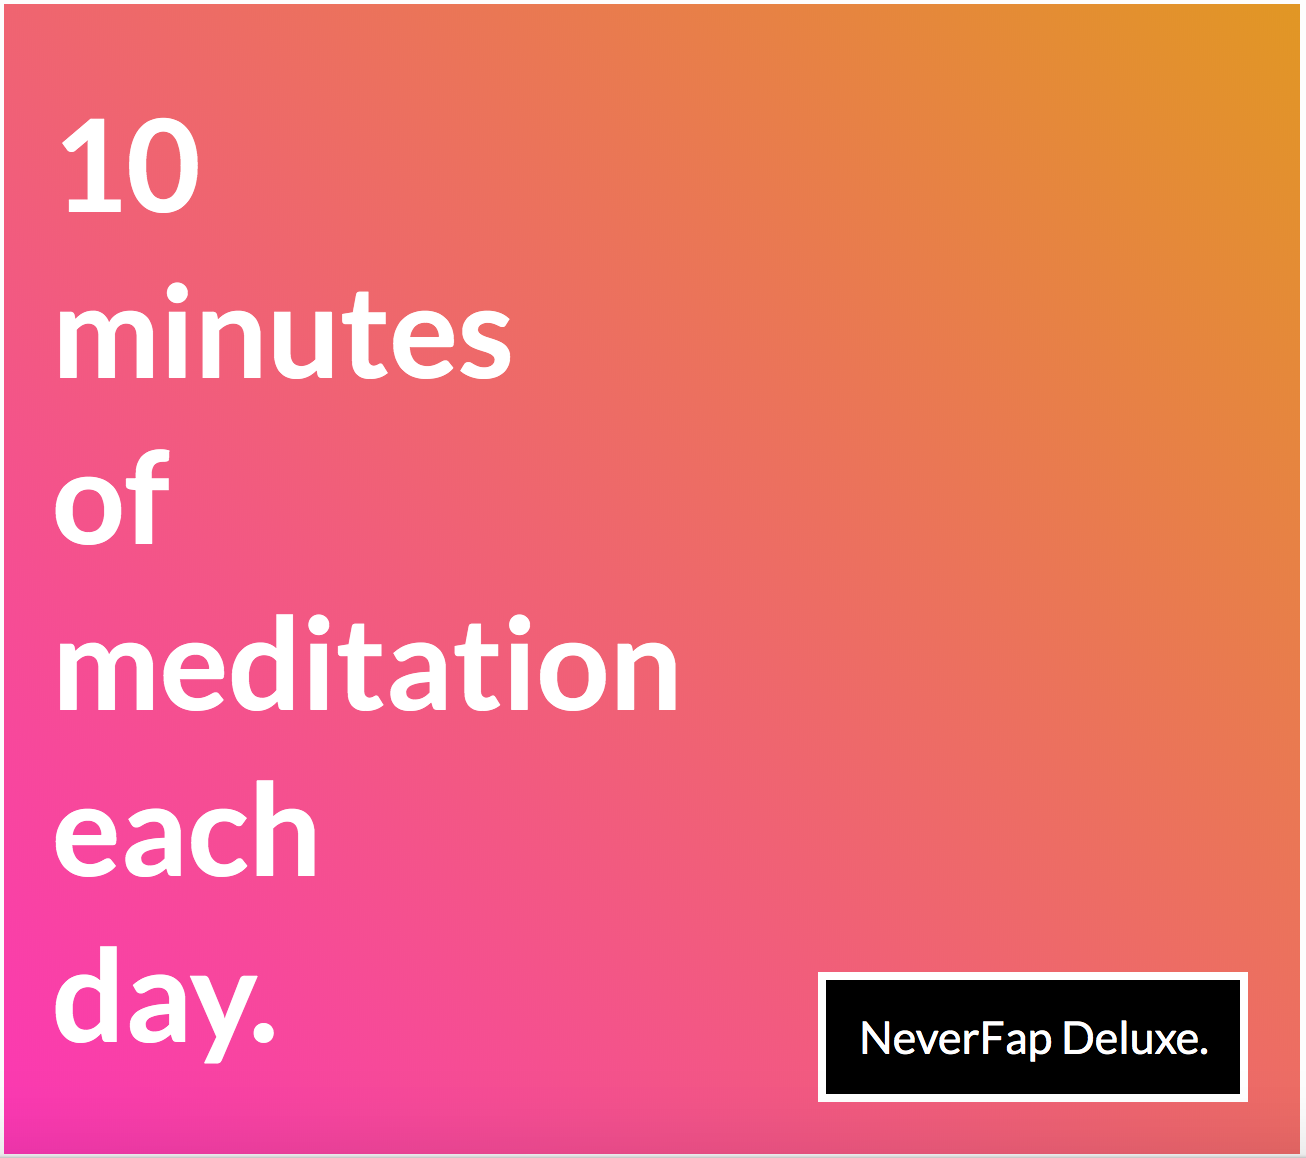 10 Minutes Meditation Each Day